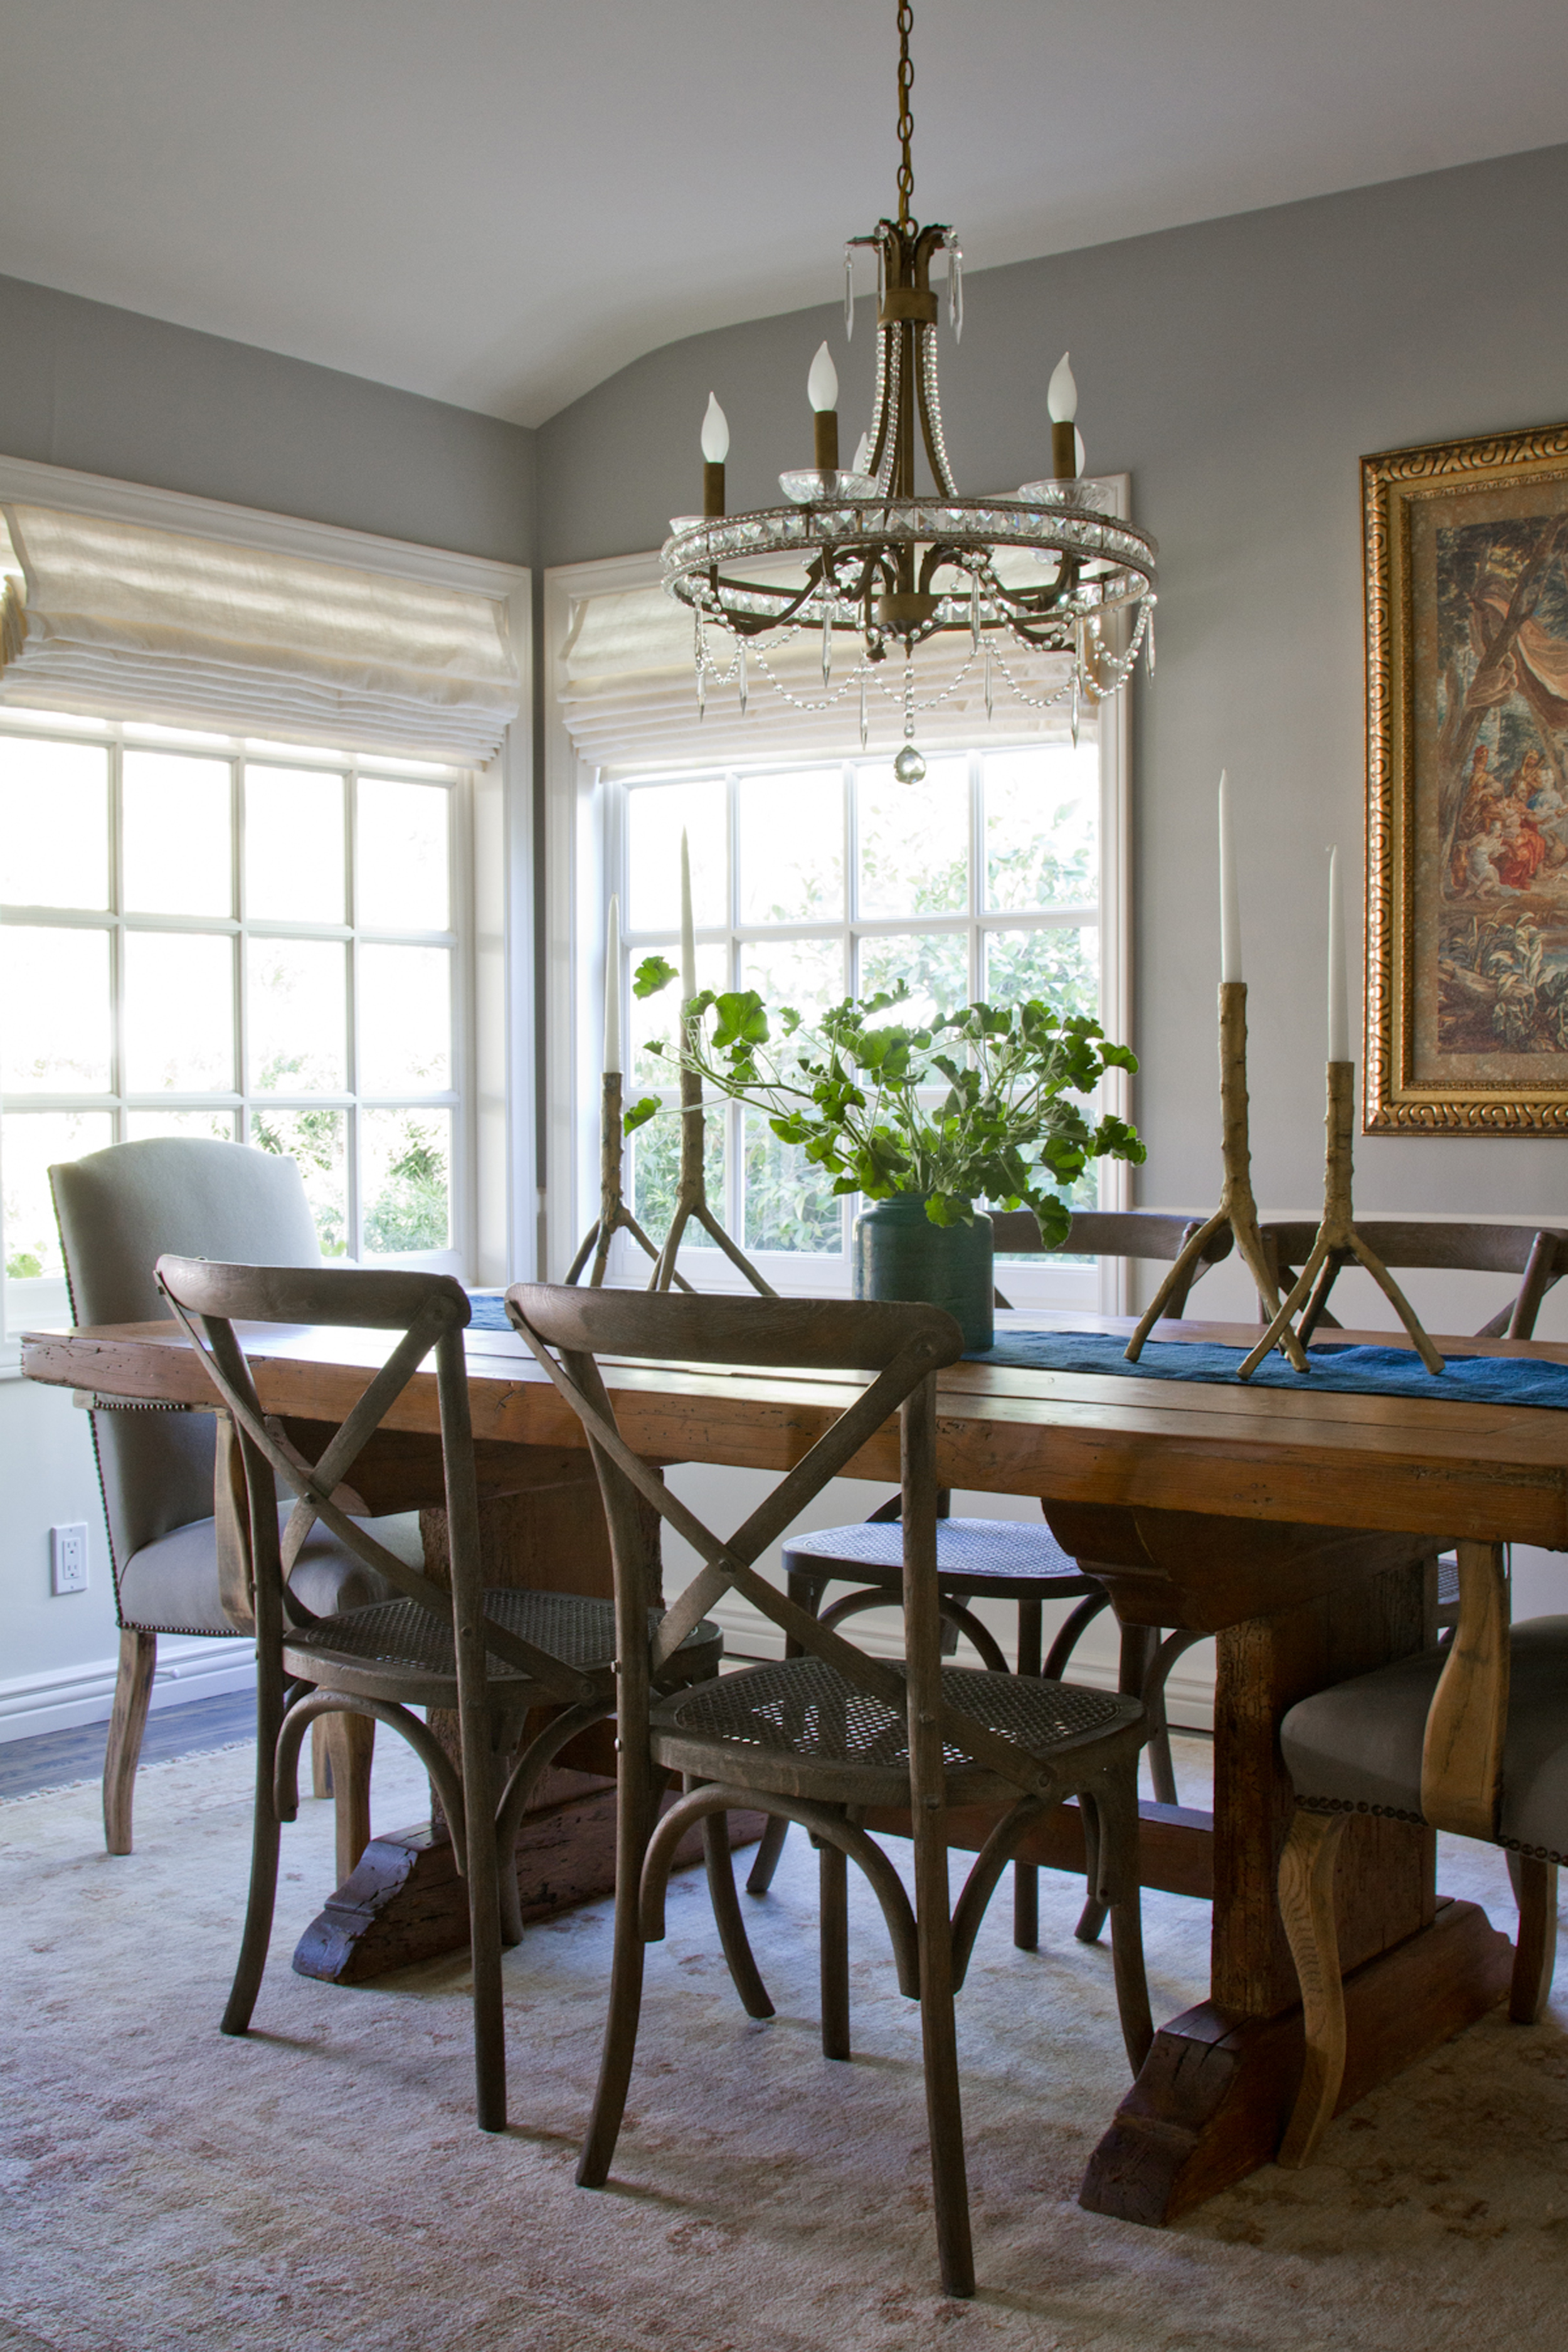 Dining Room Rules The Cheat Sheet You've Been Waiting For 5